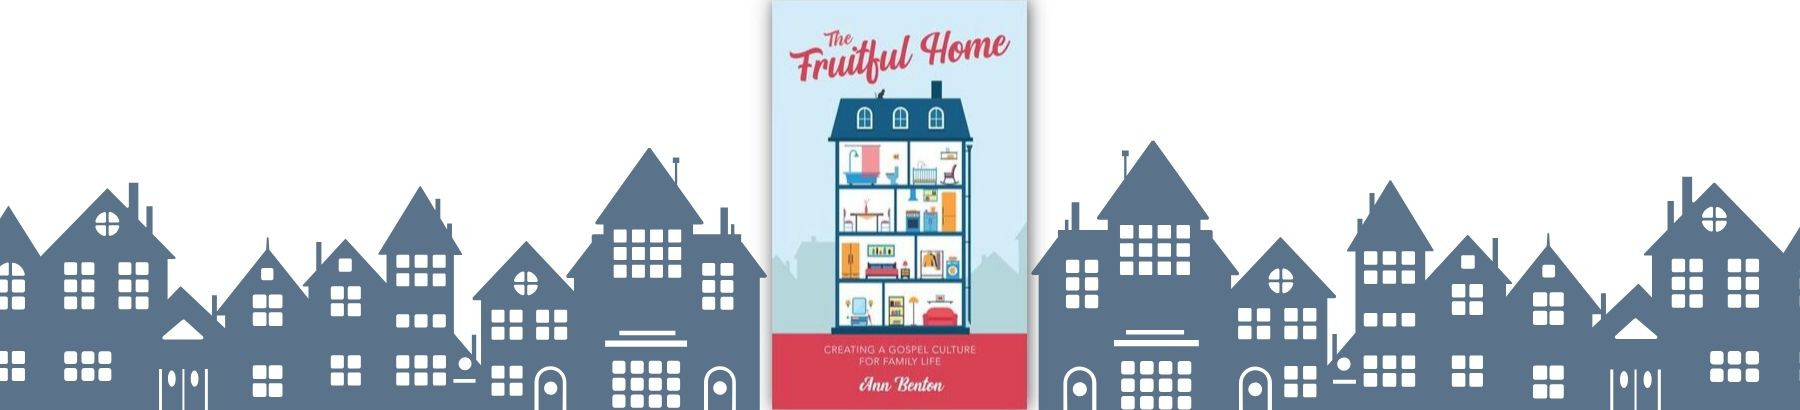 The Fruitful Home by Ann Benton